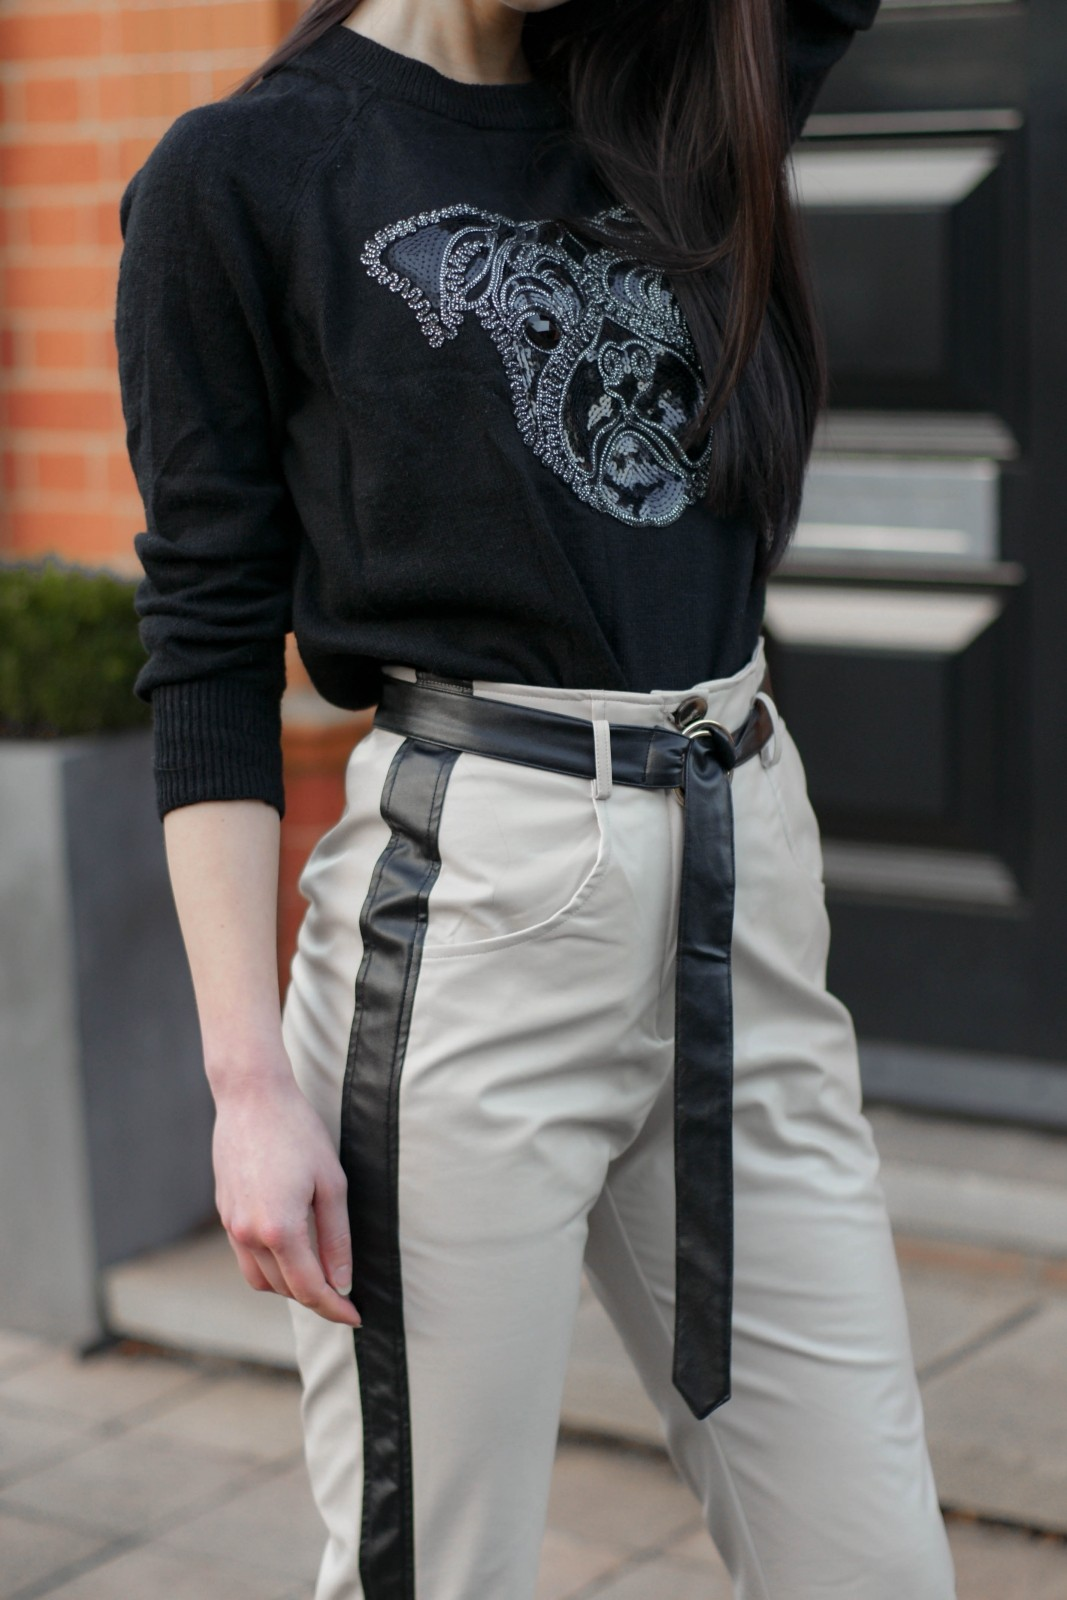 Why Leather Pants Are Still In Style (And You Should Get A Pair) (11 of 15)